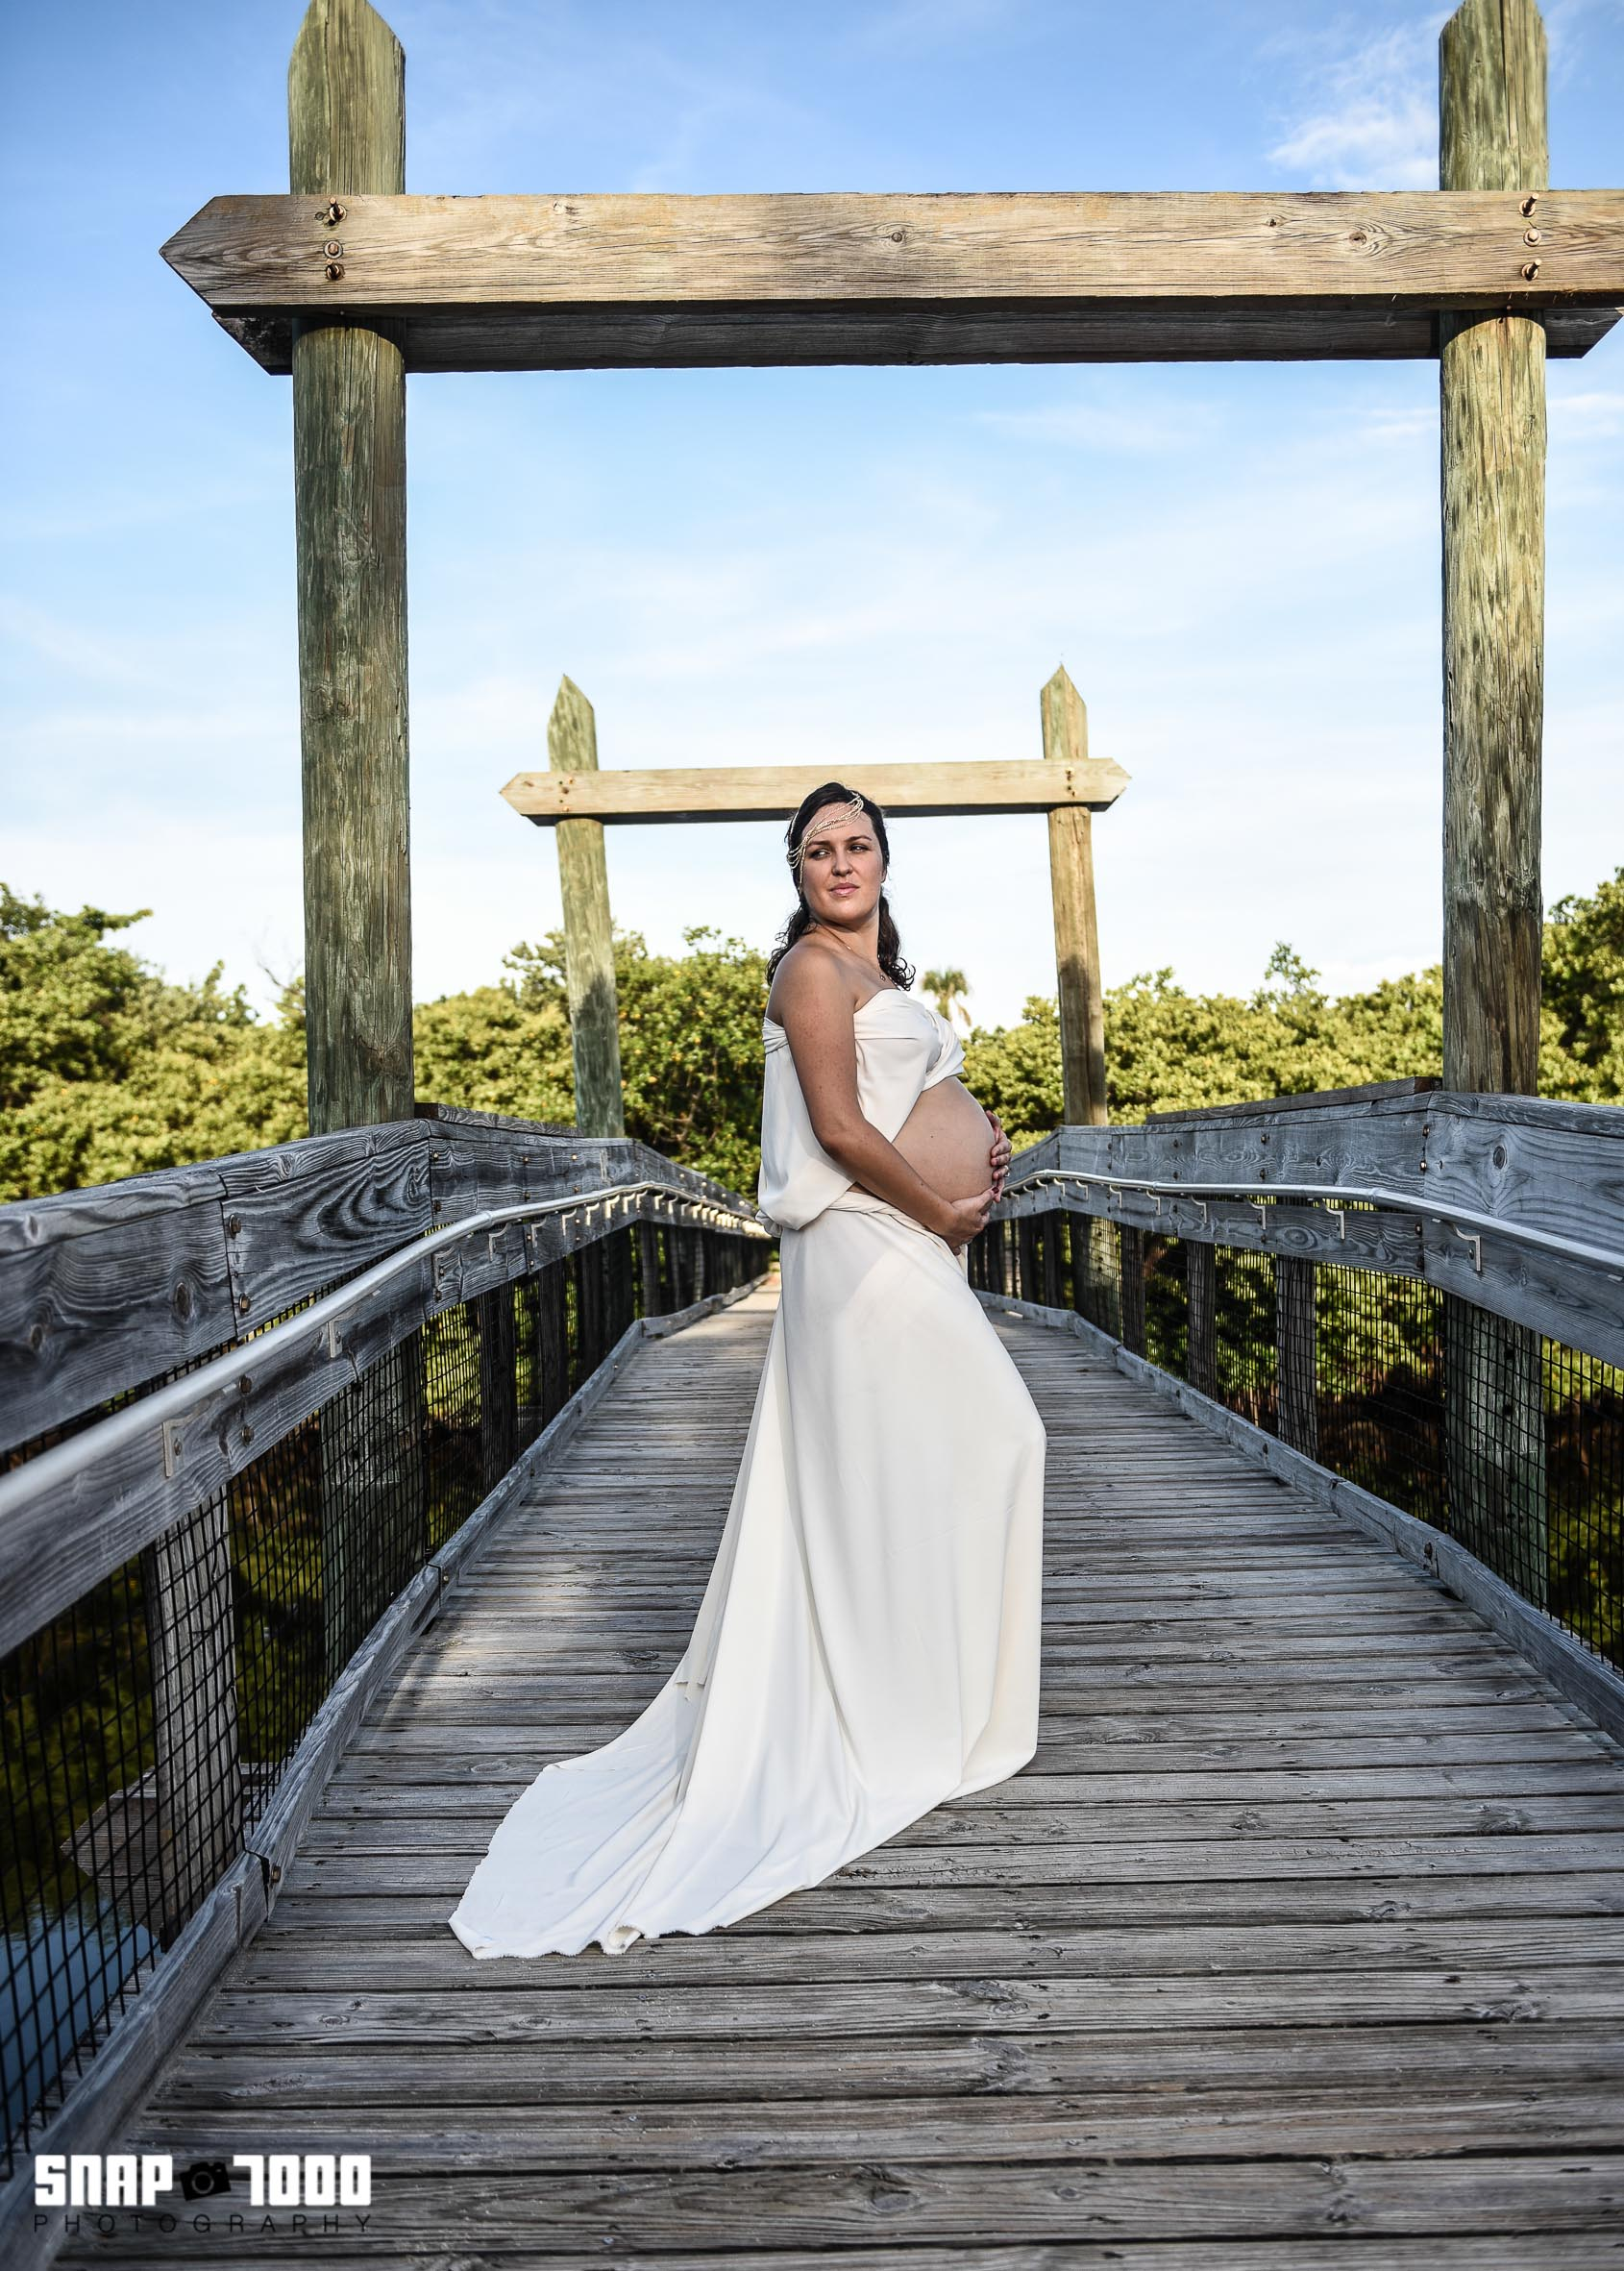 Maternity | Cooper City | Snap7000 P